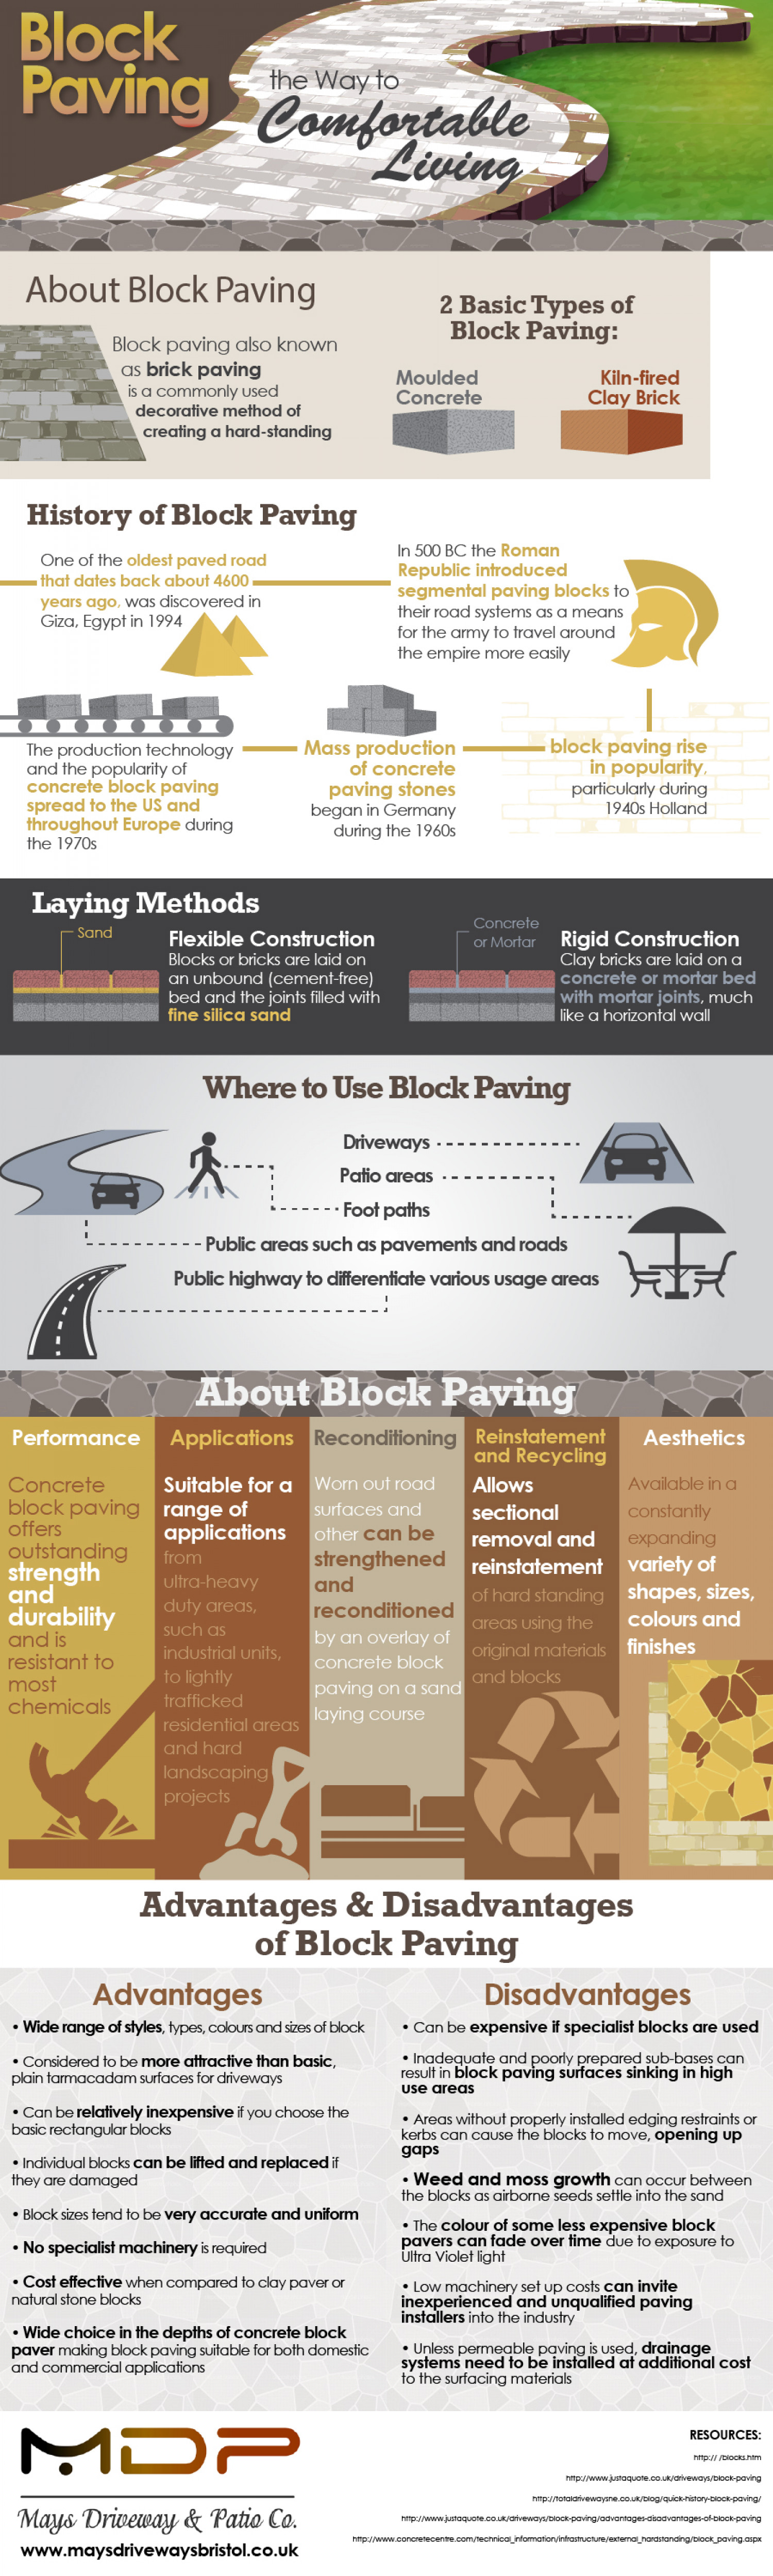 Block Paving - The Way to Comfortable Living Infographic